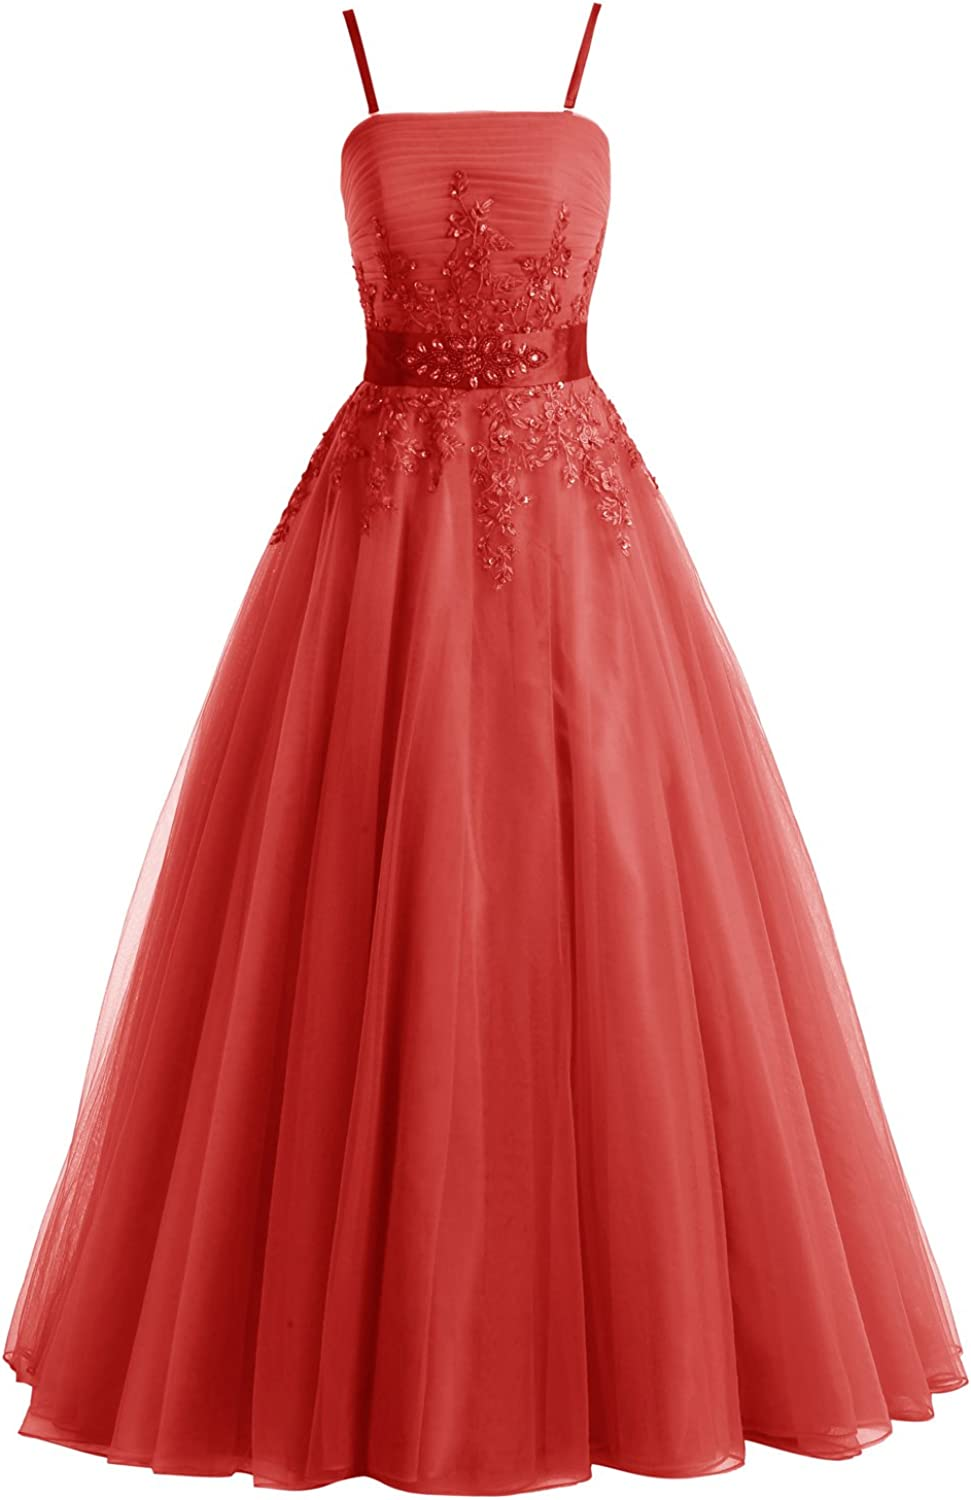 Bbonlinedress Long Tulle Appliques Prom Dresses Beaded ALine Formal Evening Gowns